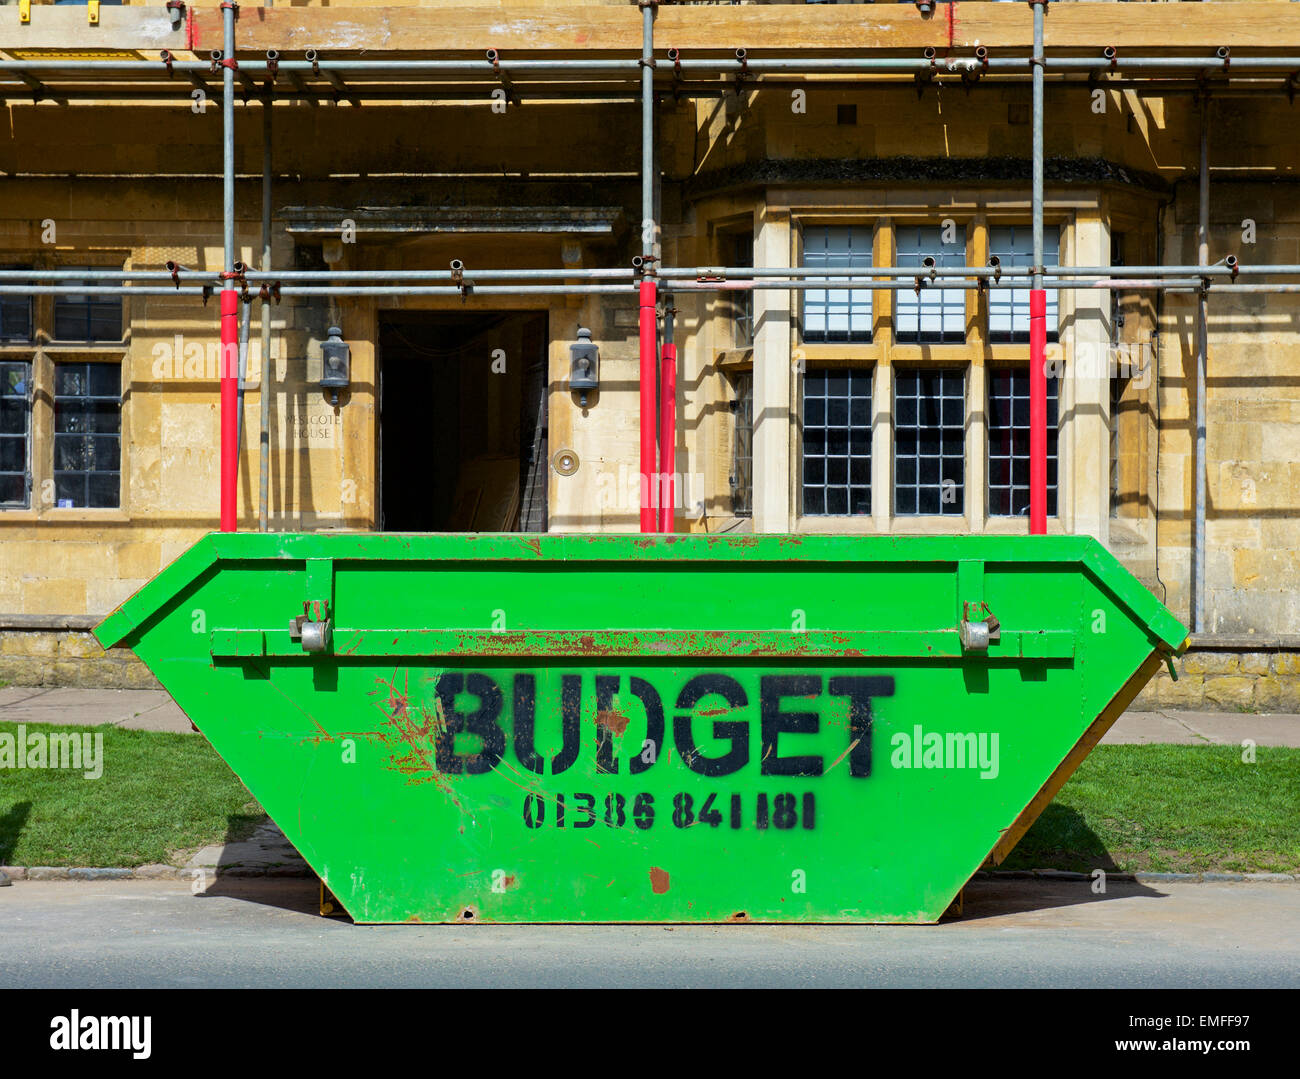 rubbish-skip-outside-house-in-chipping-campden-being-renovated-gloucestershire-EMFF97.jpg